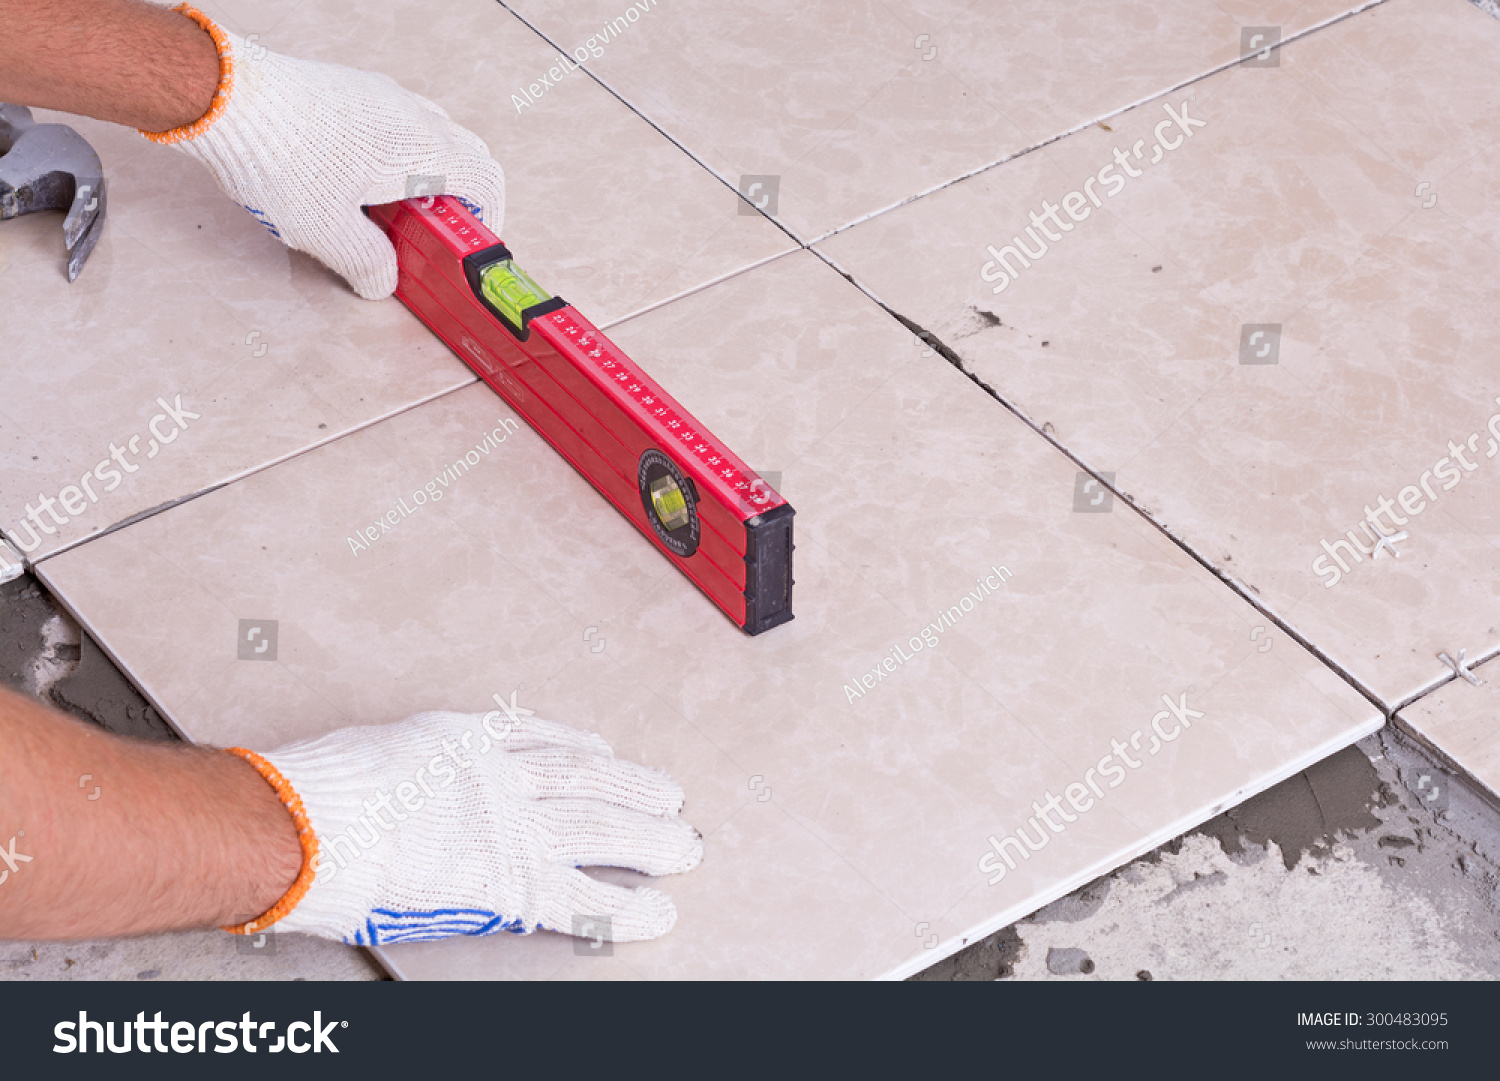 Tiler installing ceramic tiles on floor stock photo 300483095 tiler installing ceramic tiles on a floor dailygadgetfo Image collections